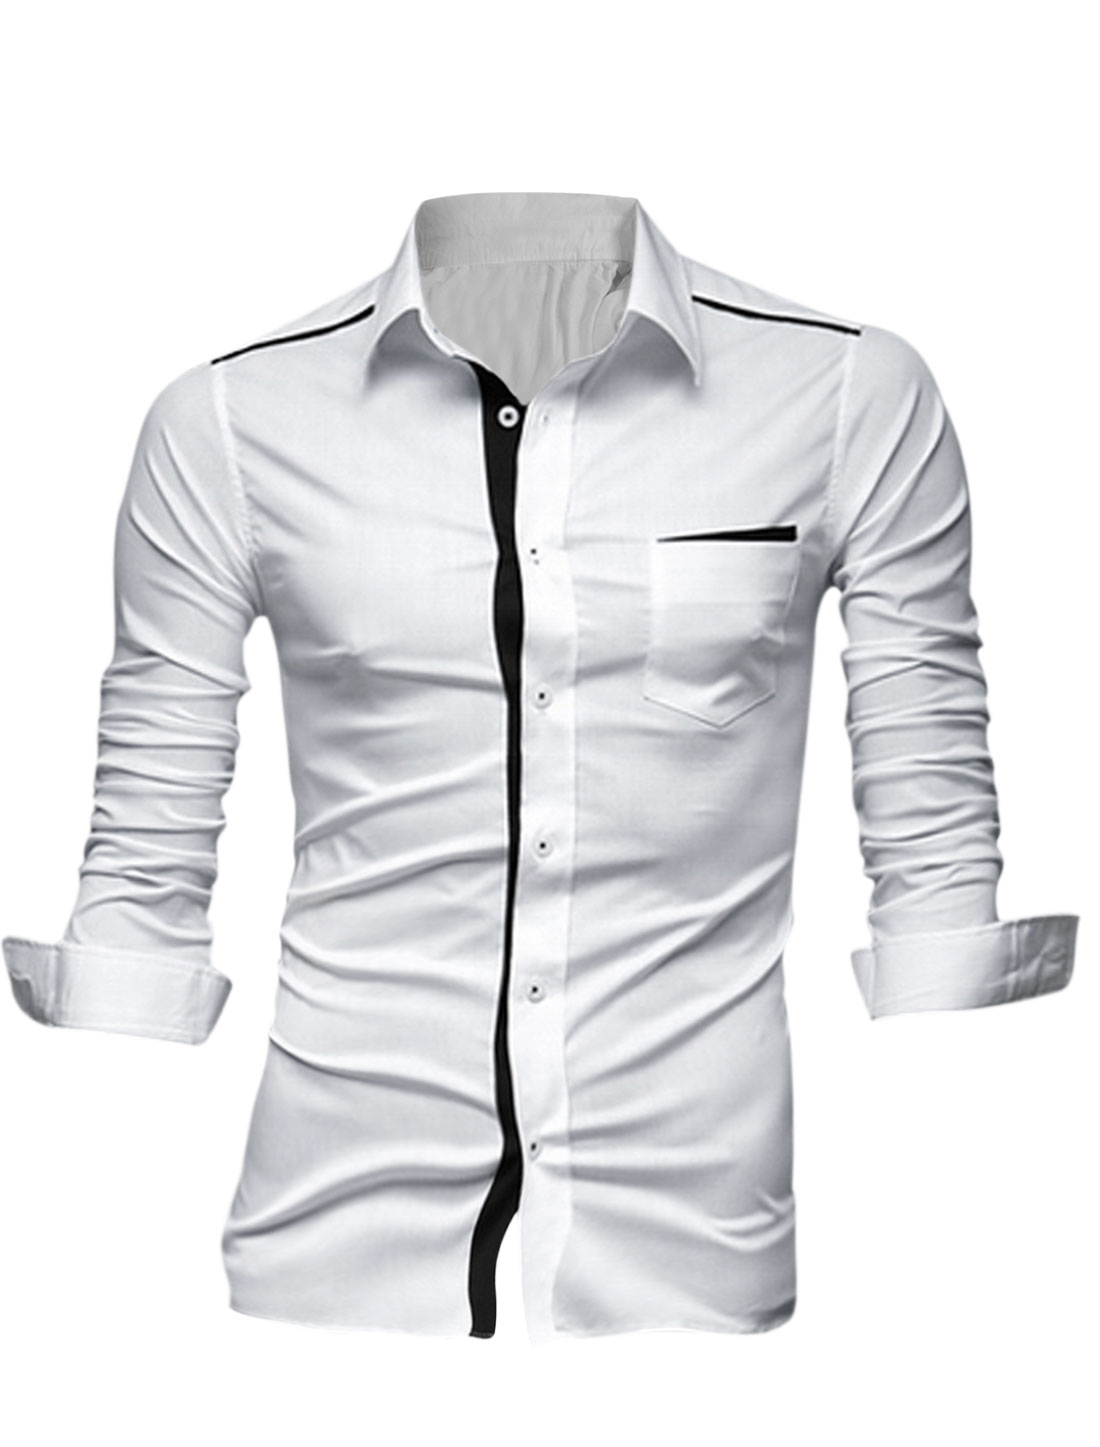 Men-Long-Sleeves-Contrast-Color-Placket-Patched-Detail-Leisure-Shirt